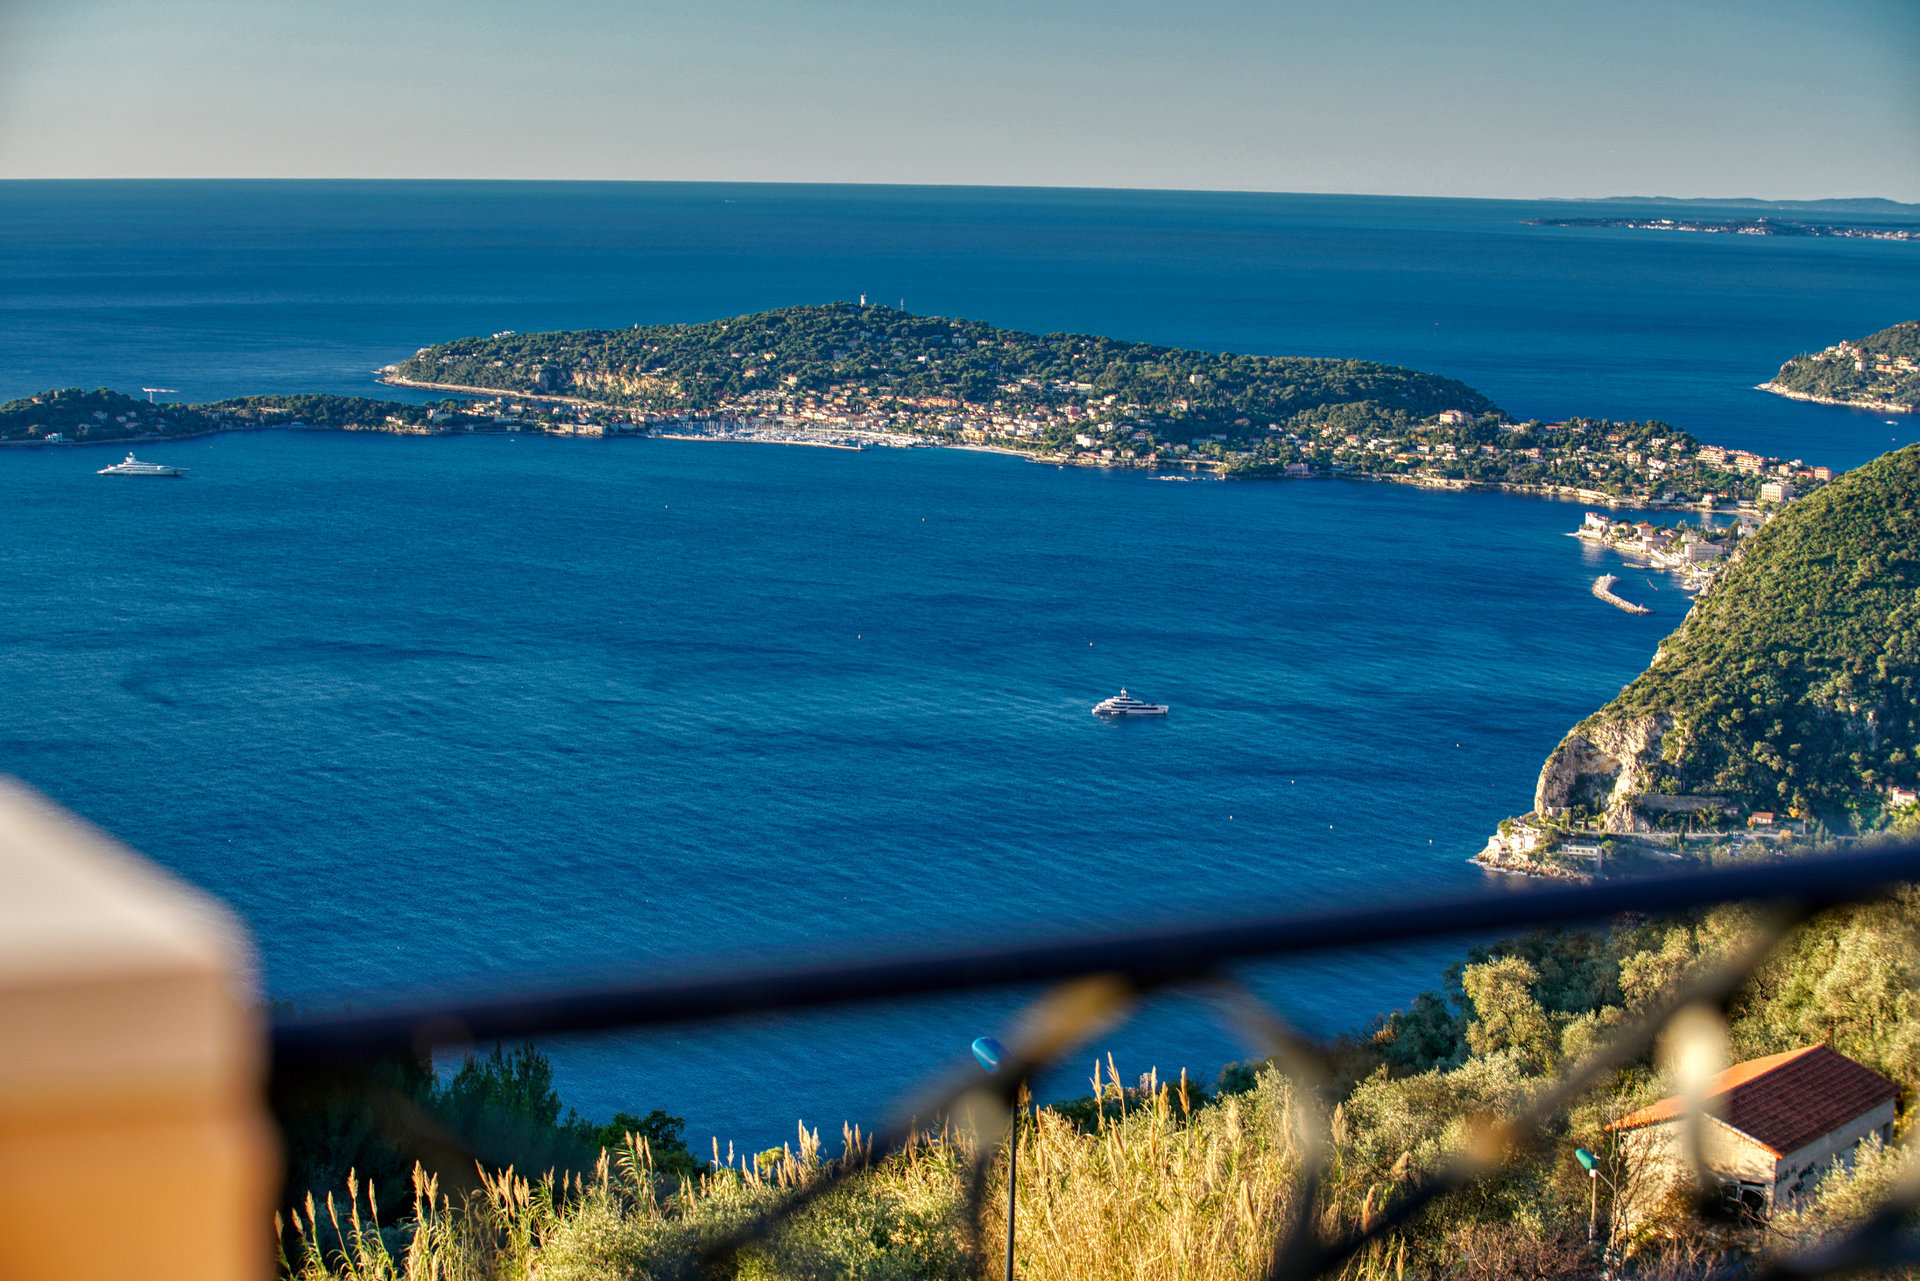 Eze - Penthouse 83m2 panoramic sea view with 74m2 terrace